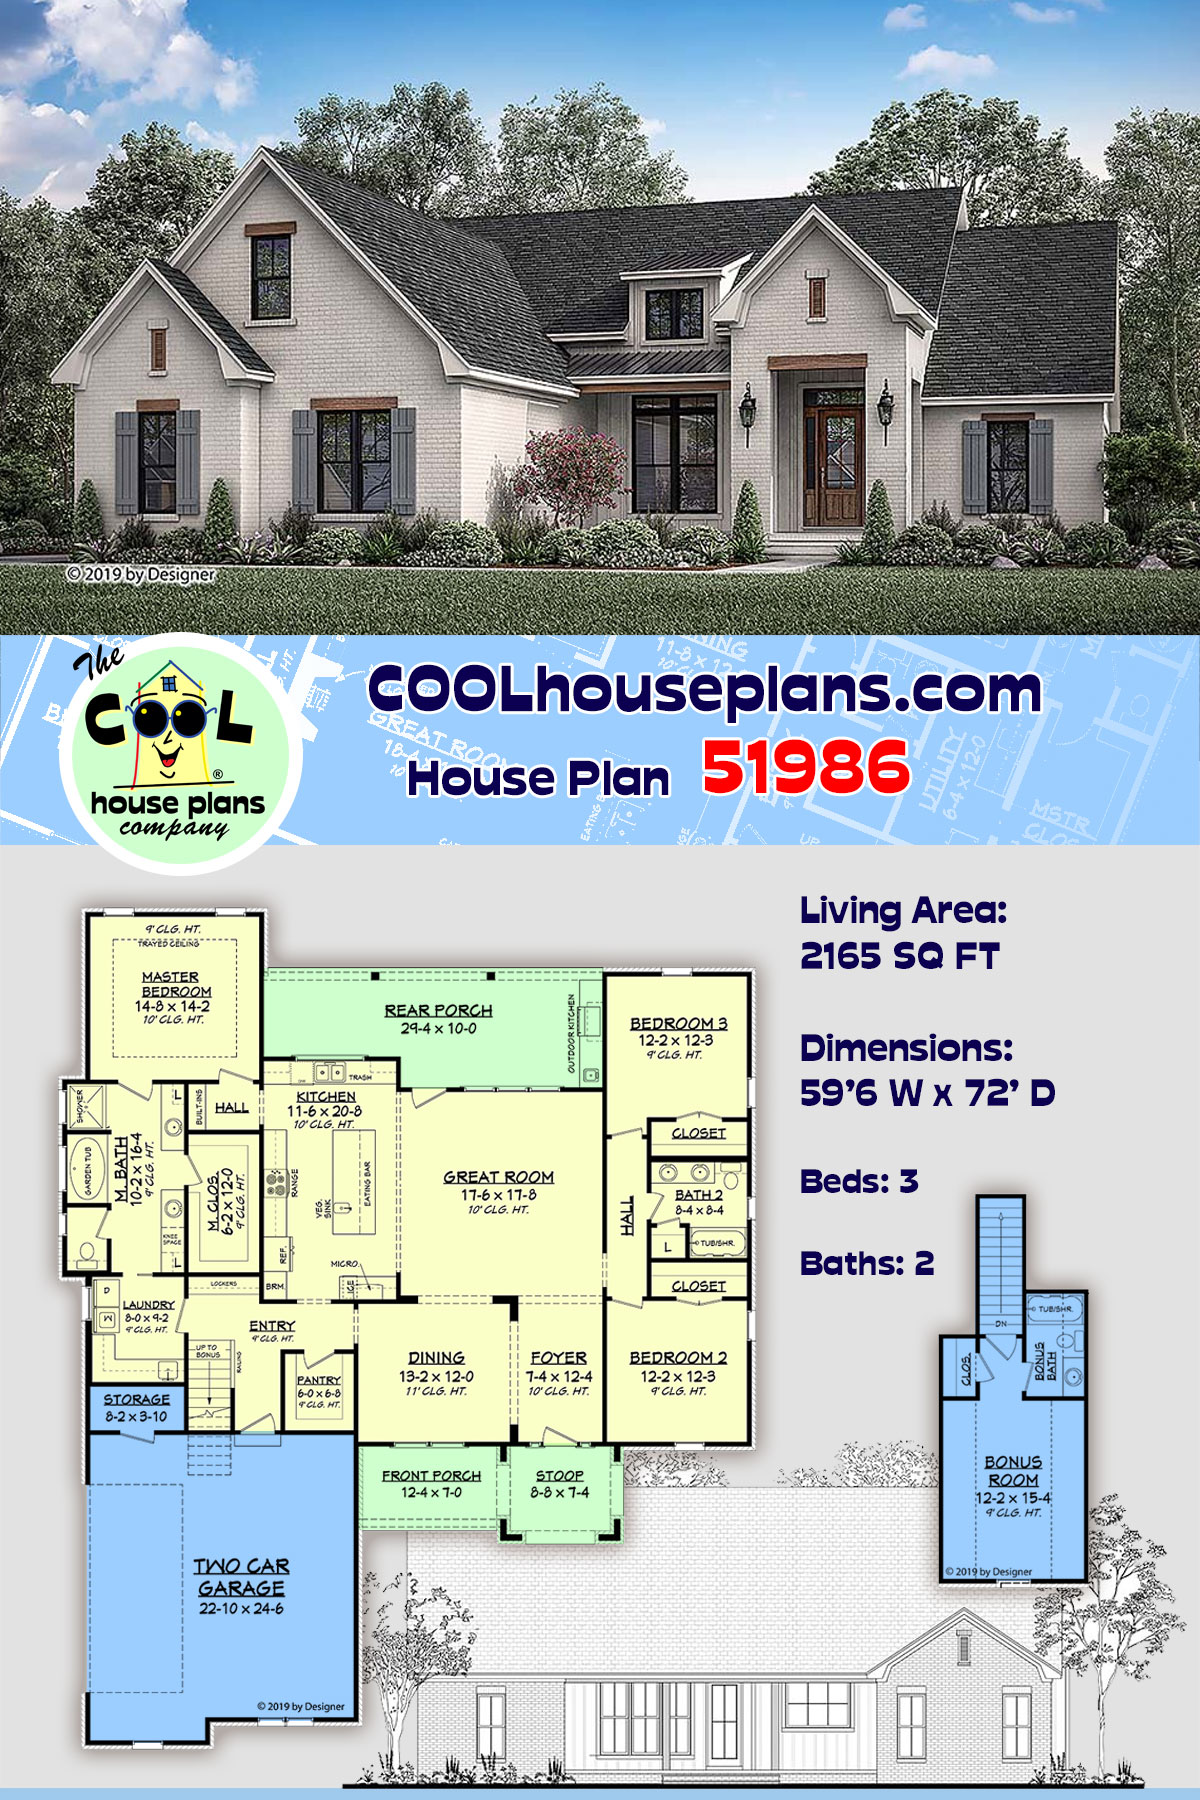 Country, European, Traditional House Plan 51986 with 3 Beds, 2 Baths, 2 Car Garage